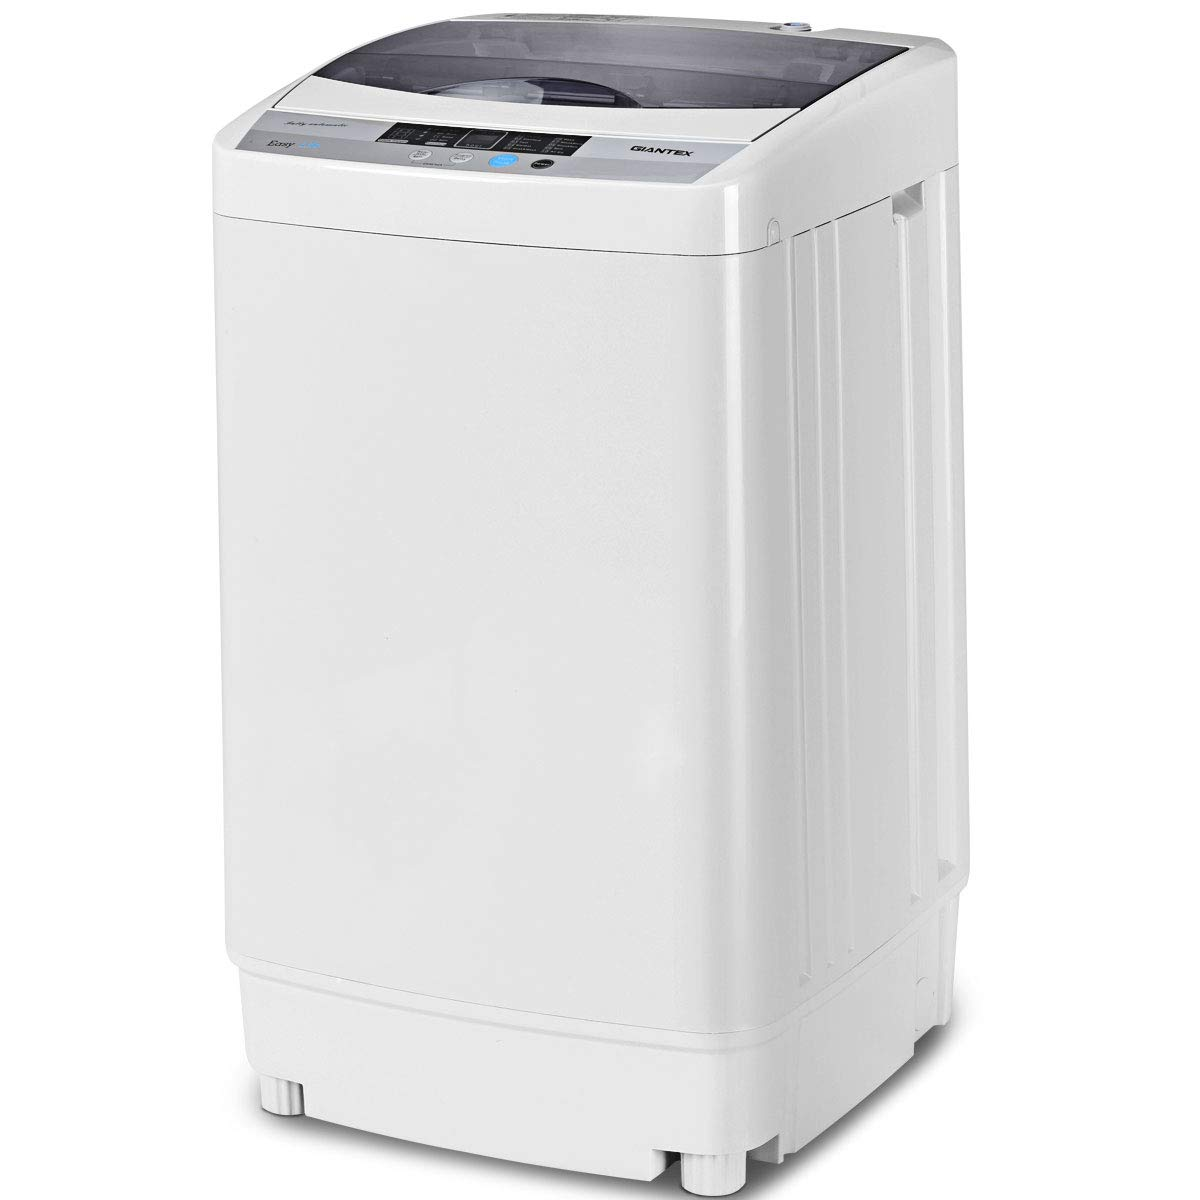 Giantex Full-Automatic Washing Machine Portable Compact 1.6 Cu.ft Laundry Washer Spin with Drain Pump, 10 programs 8 Water Level Selections with LED Display 12 Lbs Capacity by Giantex